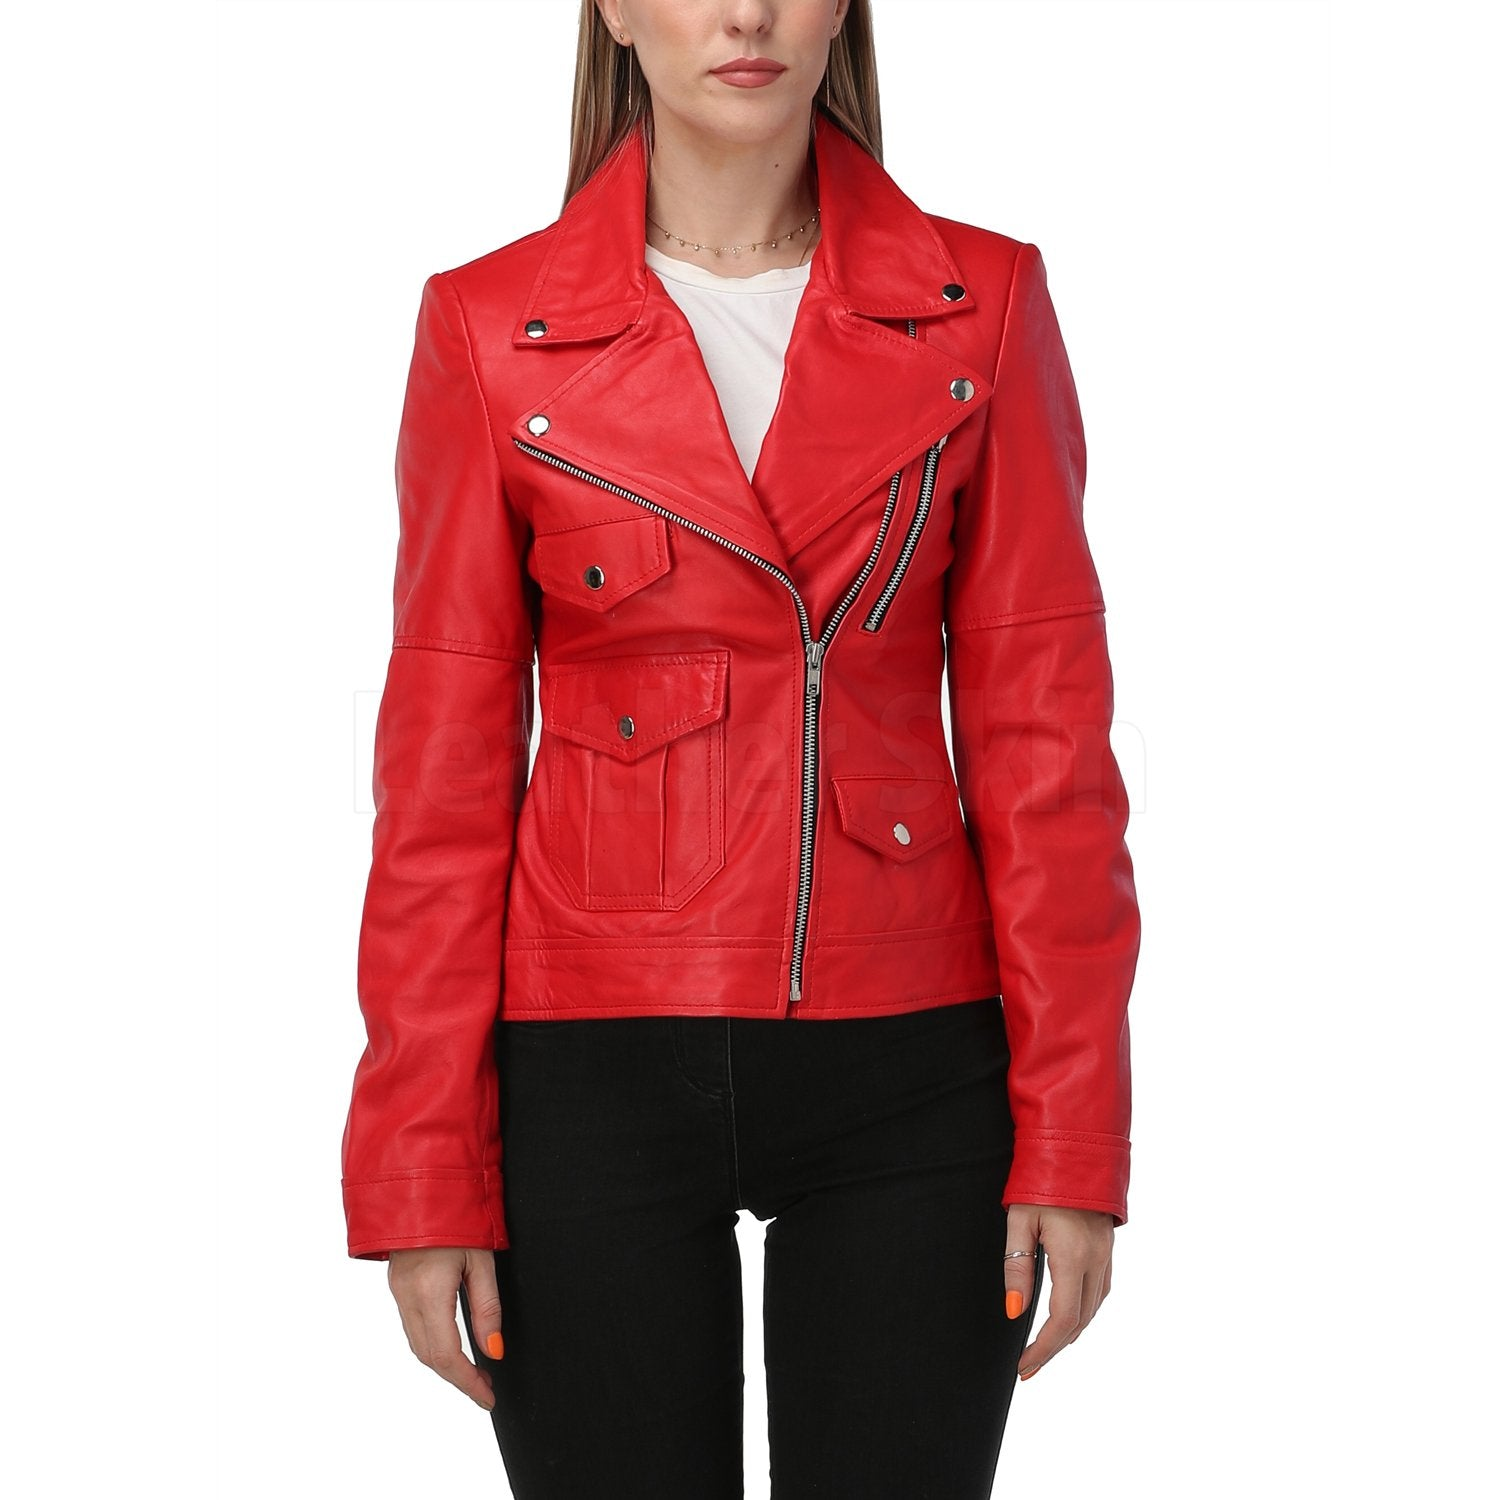 Red Leather Jacket with Classic Collar